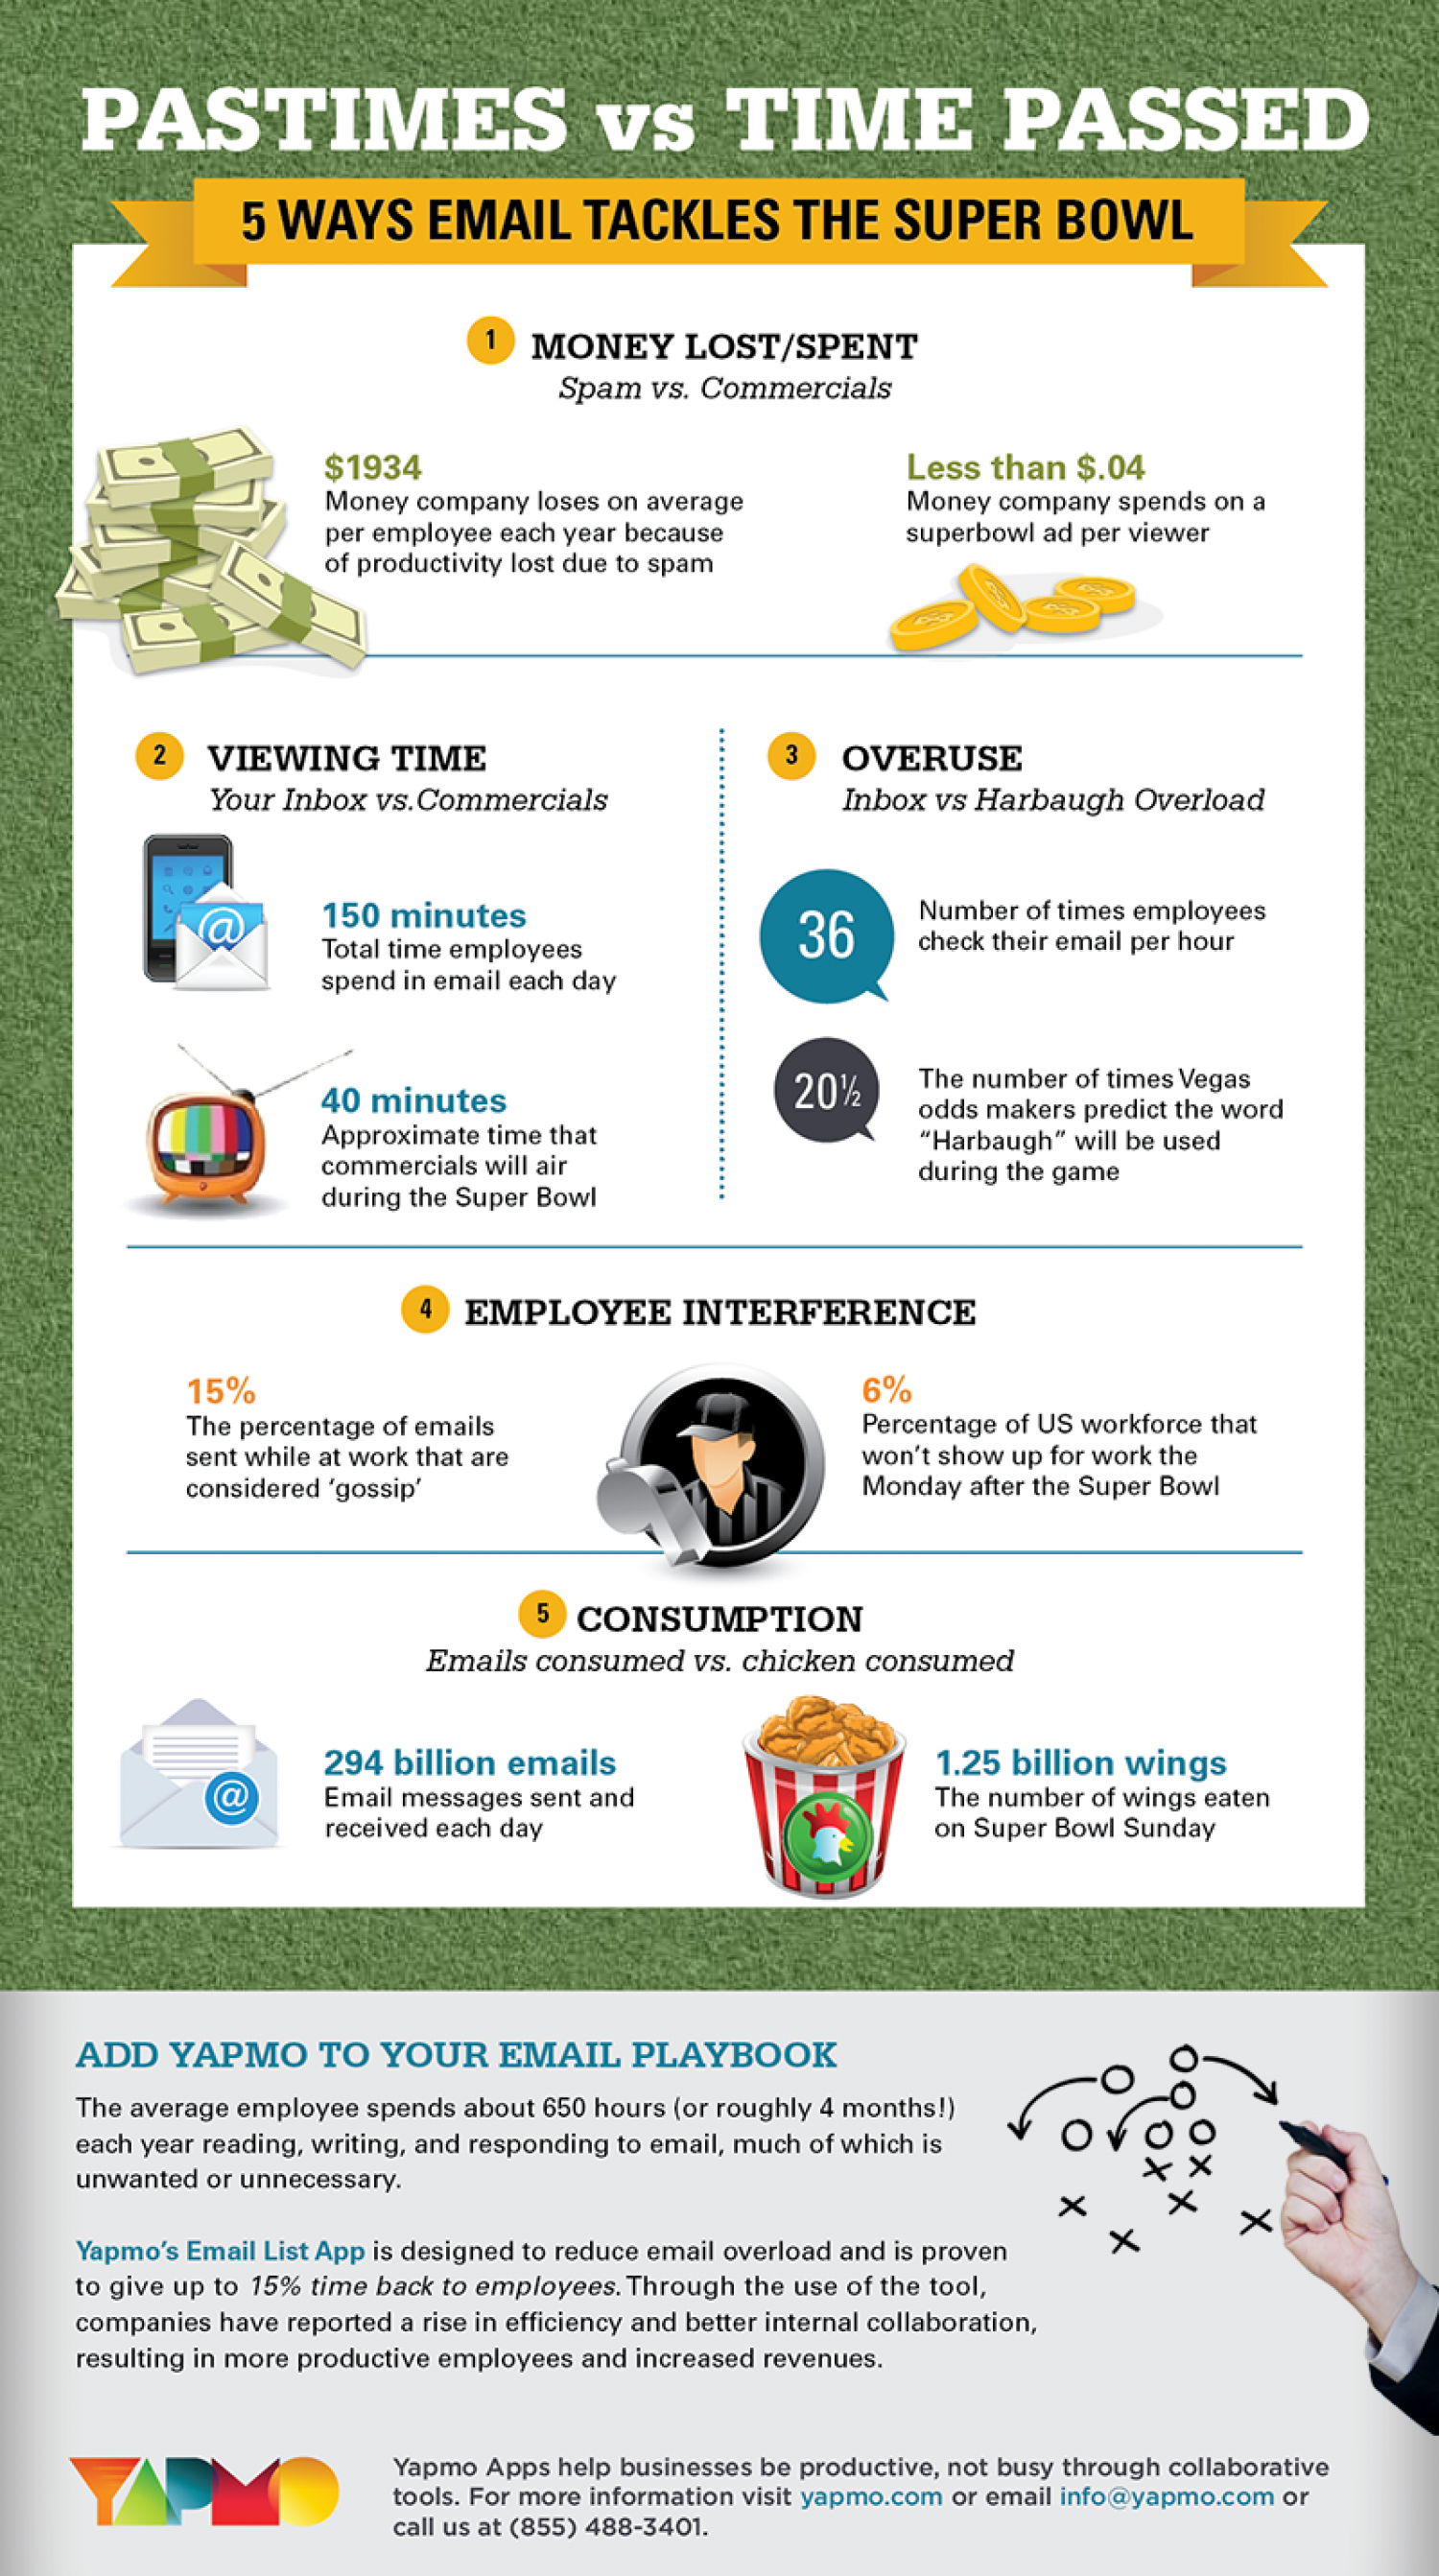 Pastimes vs. Time Passed: 5 Ways Email Tackles the Super Bowl Infographic